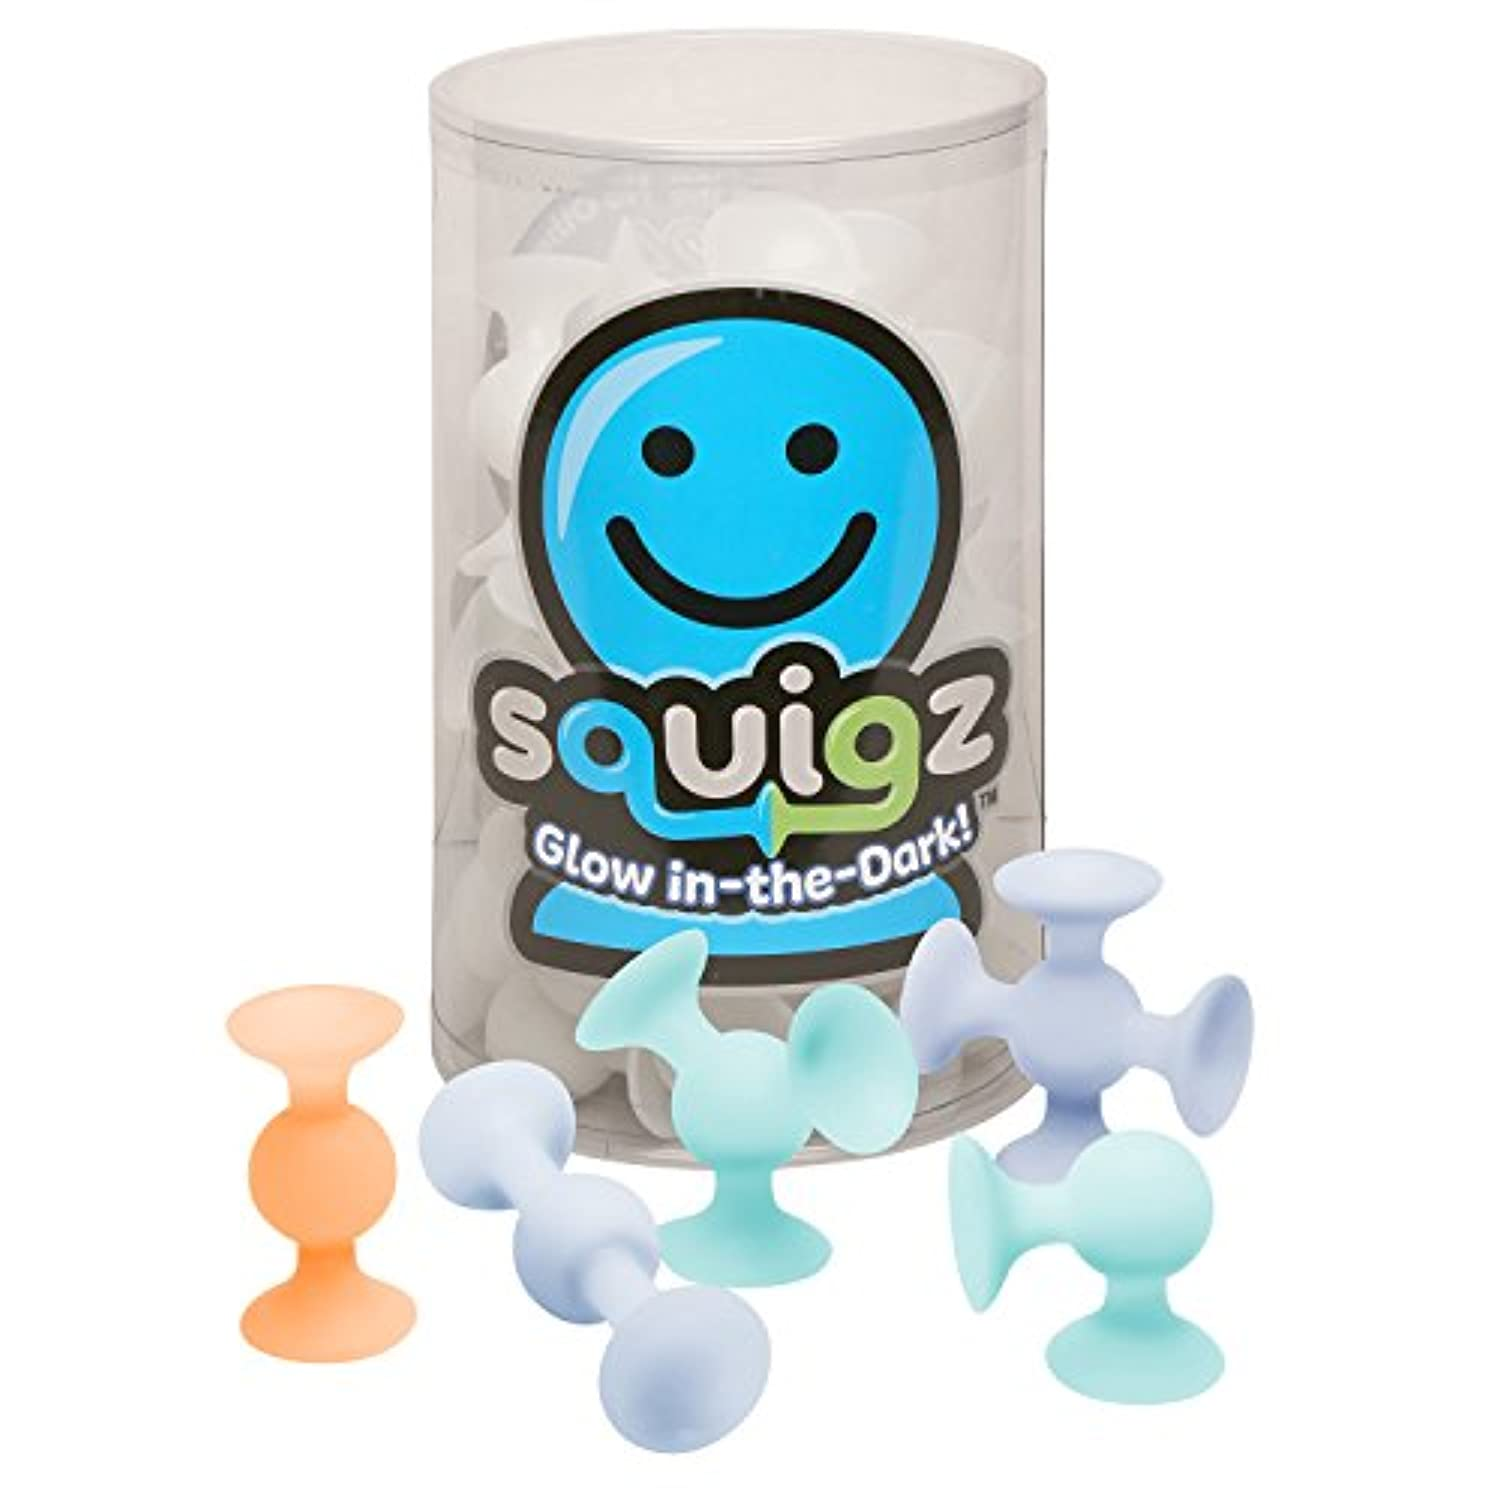 Squigz glow-in-the-dark Squigz吸引Building Toy – 24ピースセット